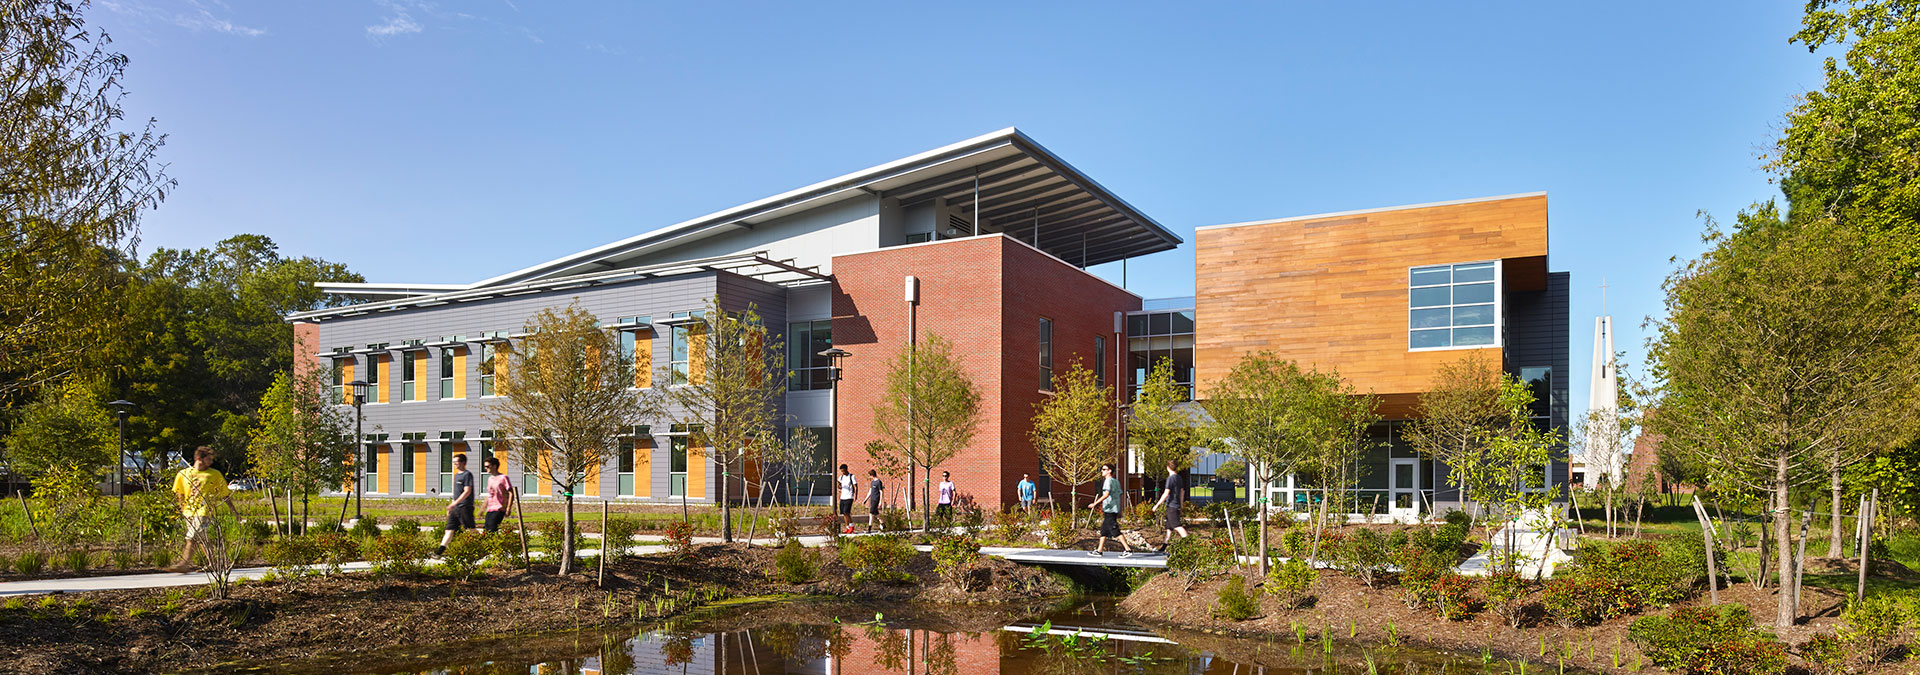 Greer Environmental Sciences Center